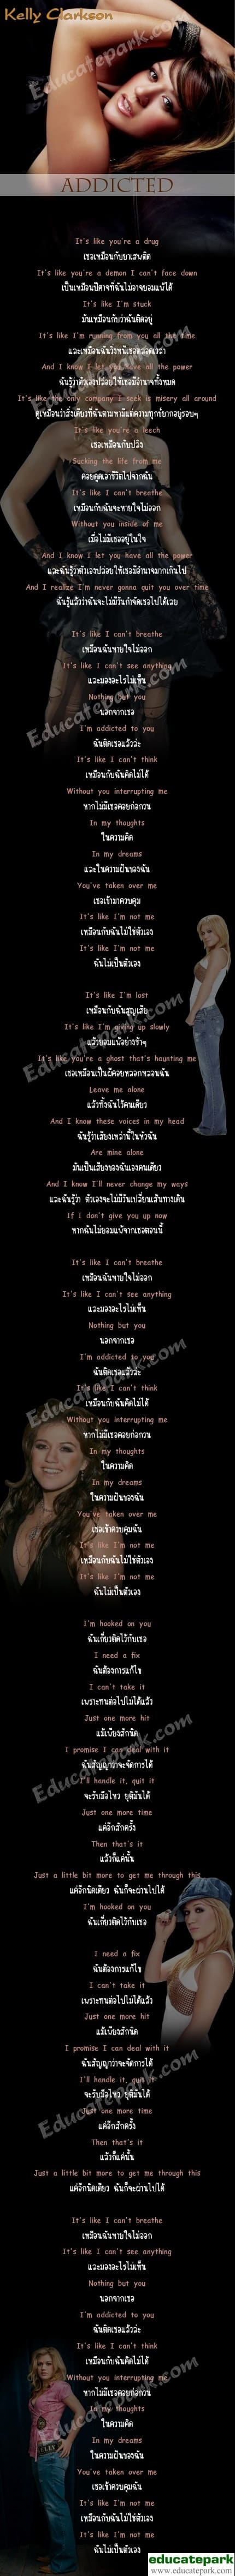 แปลเพลง Addicted - Kelly Clarkson